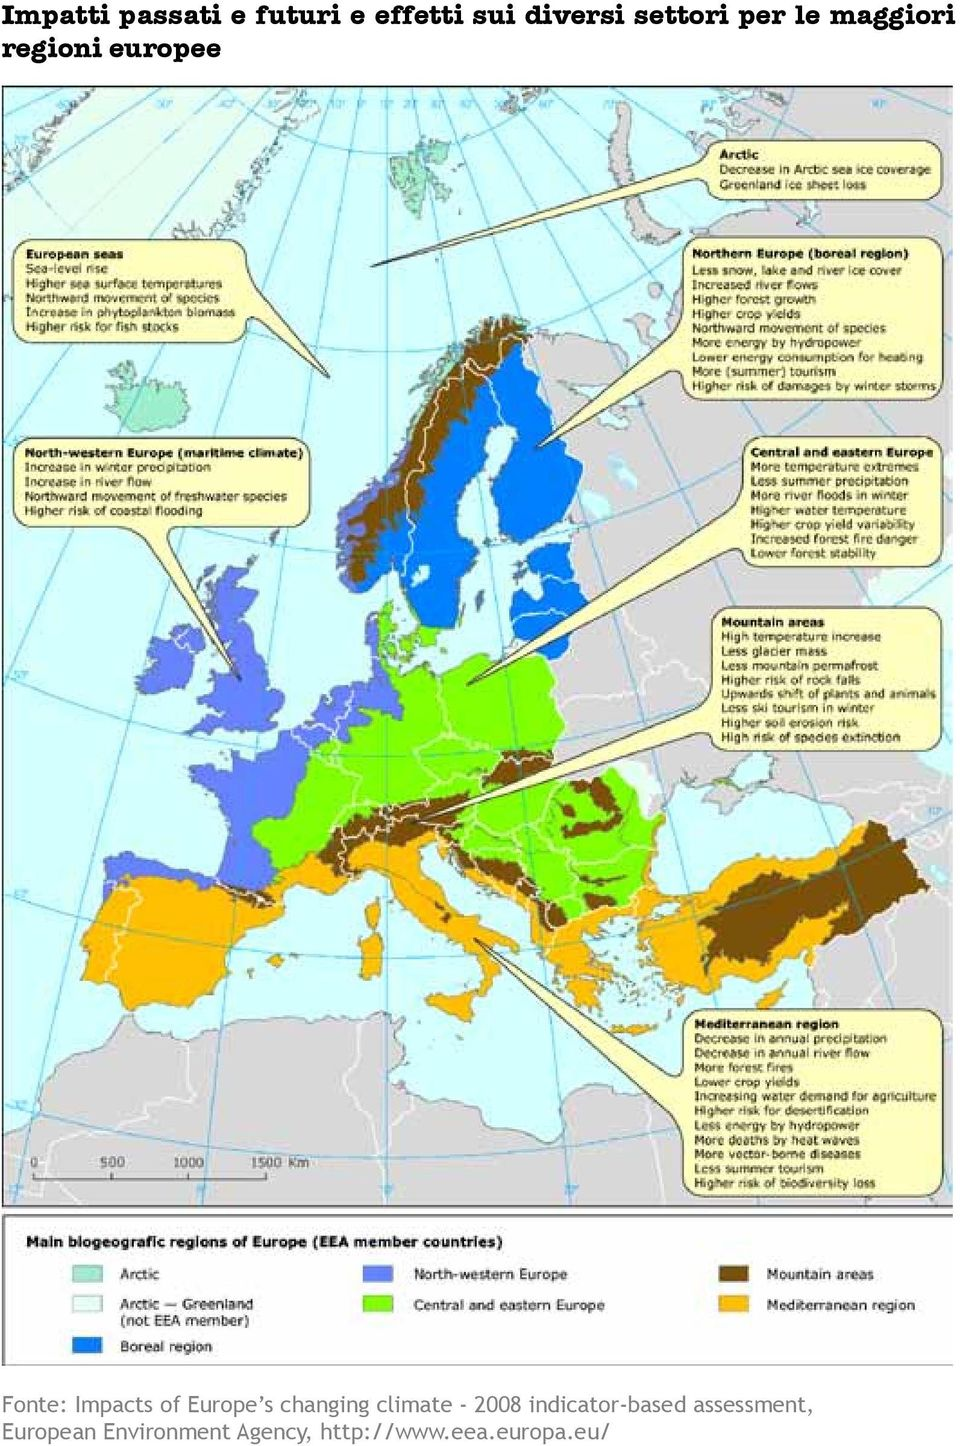 Europe s changing climate - 2008 indicator-based